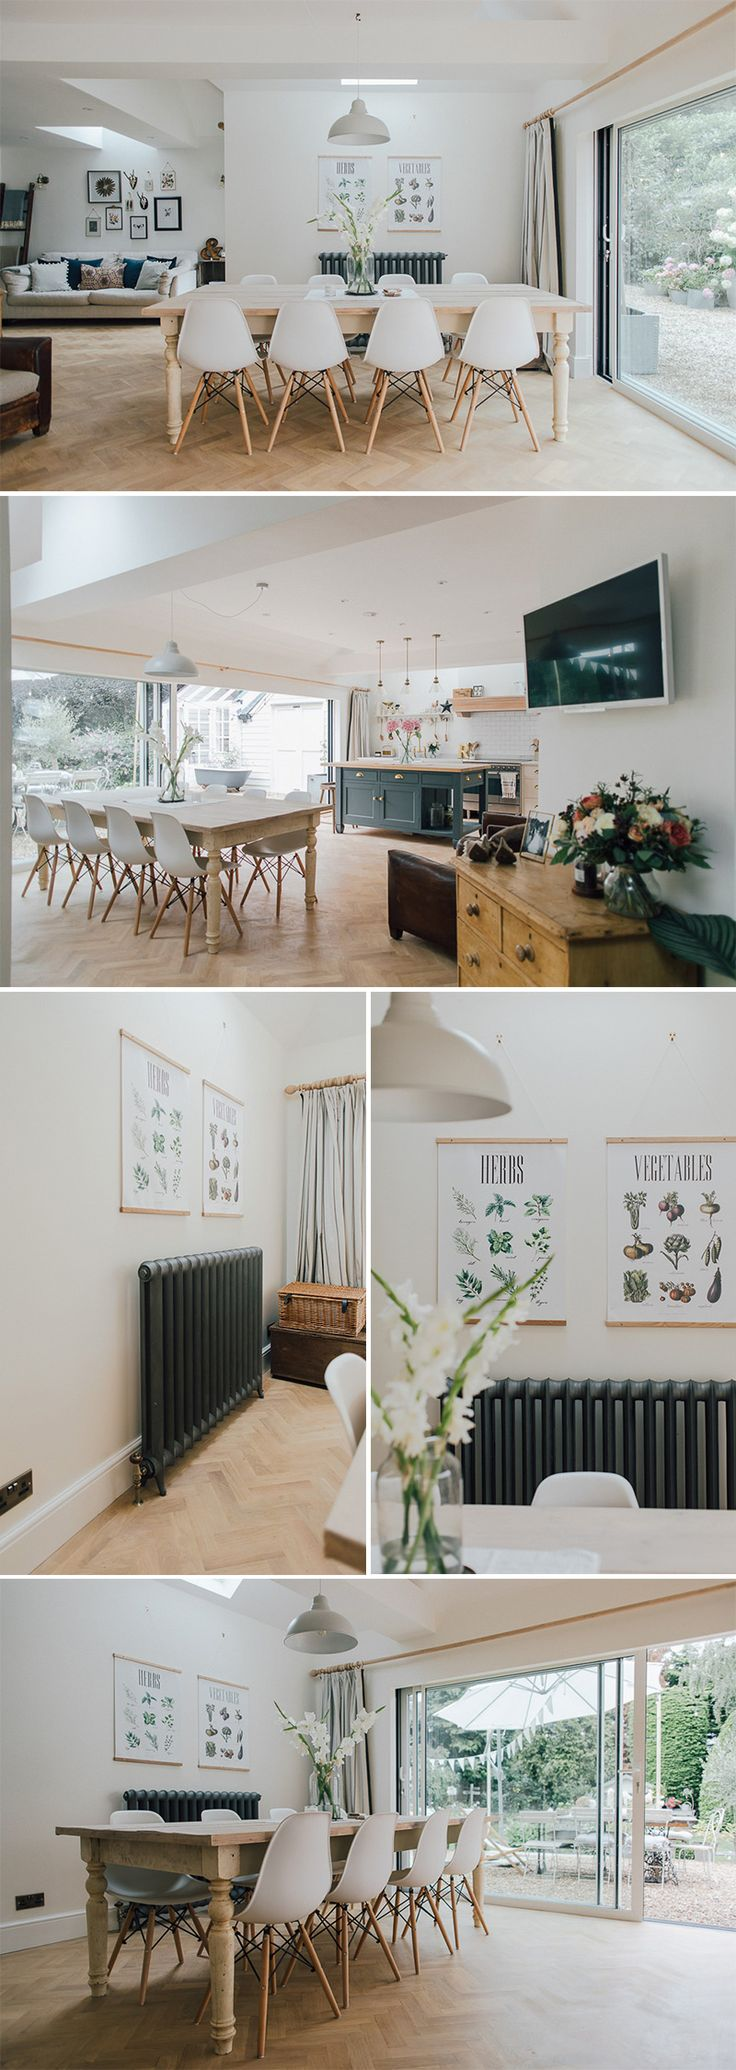 a modern country kitchen with parquet flooring and bi fold doors | rubble radiator | Dining room wall art | radiator painted in downpipes | 8 Seater Wooden Table Made From Reclaimed Scaffold Boards | Eames Replica Eiffel Chairs | large dining table | Kitchen island inspiration